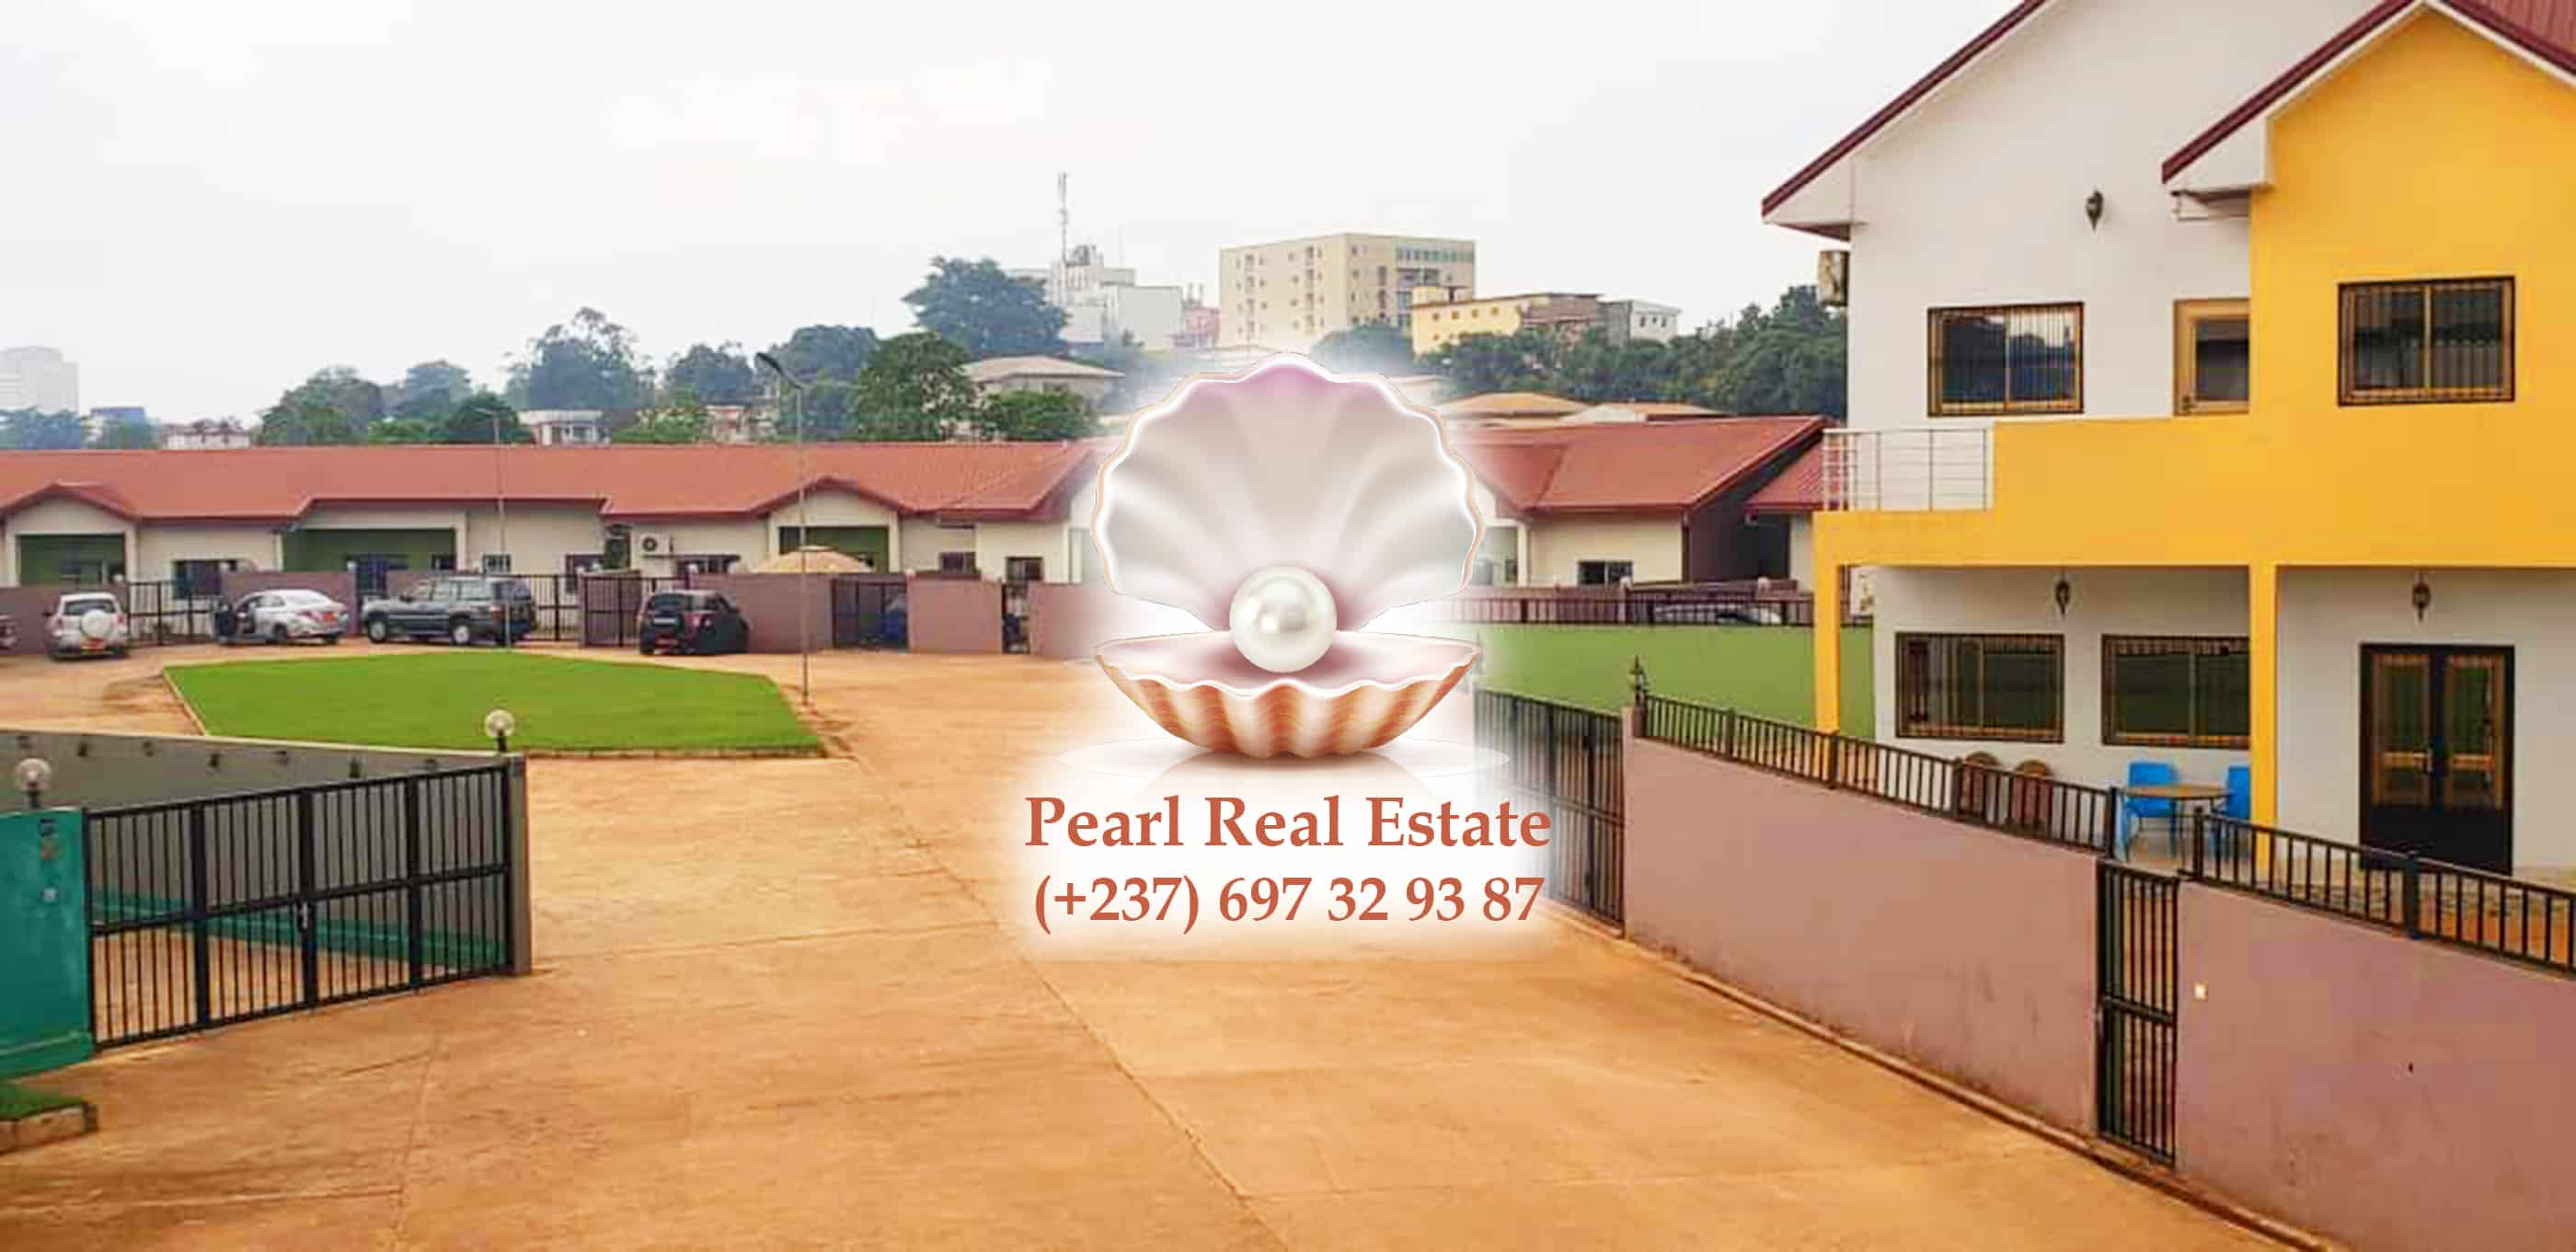 House (Villa) to rent - Yaoundé, Mfandena, Omnisports - 1 living room(s), 3 bedroom(s), 3 bathroom(s) - 450 000 FCFA / month